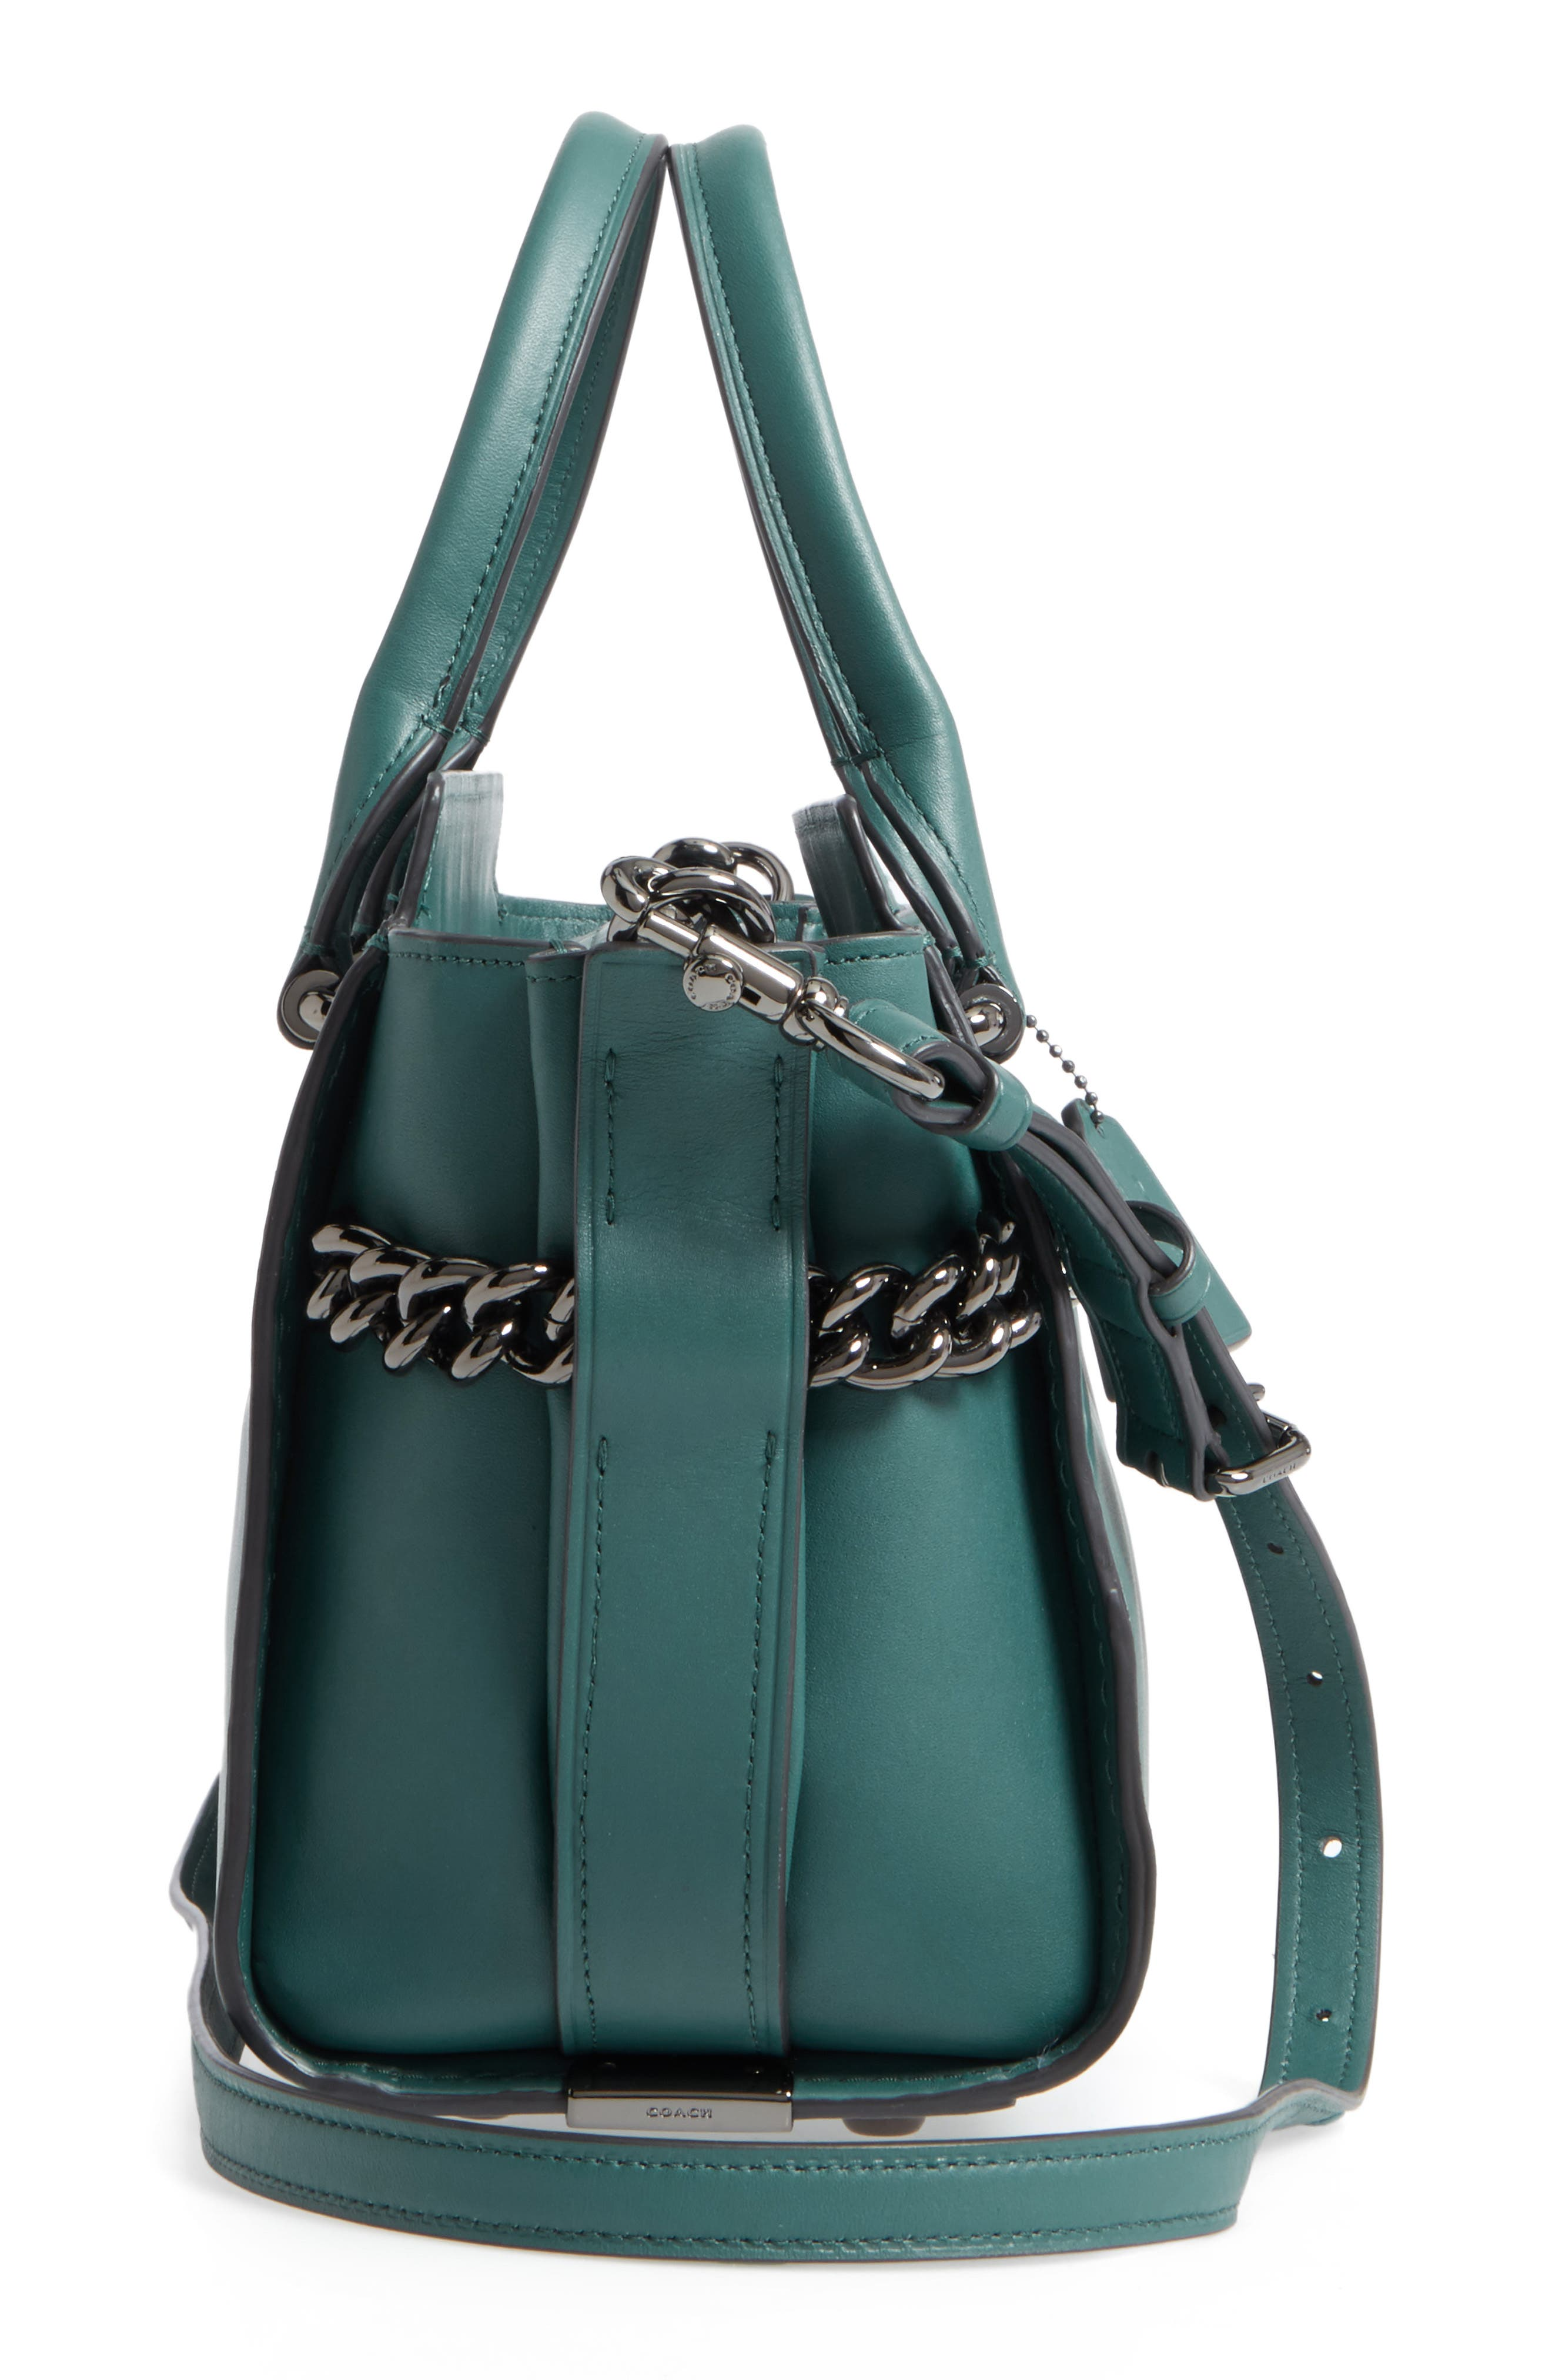 ID Bracelet Swagger 27 Calfskin Leather Satchel,                             Alternate thumbnail 4, color,                             Dark Turquoise